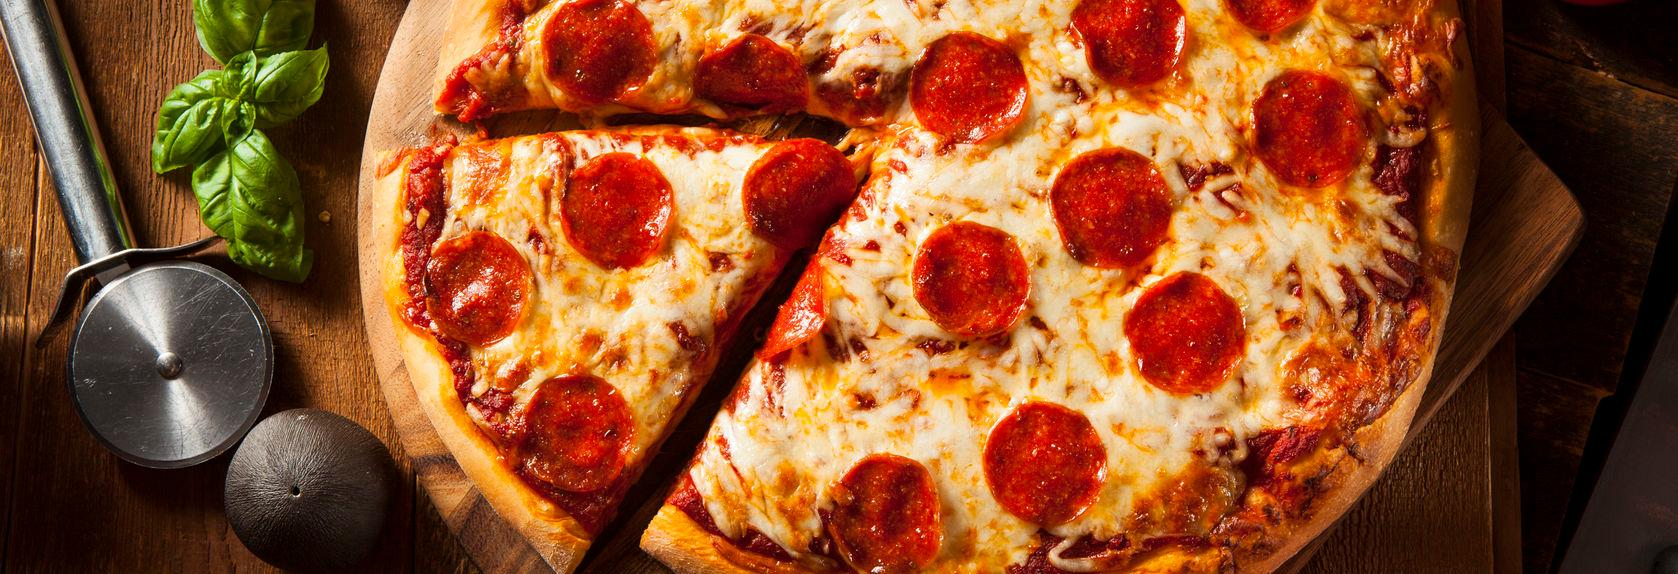 pizza, catering, dine in, take out, delivery